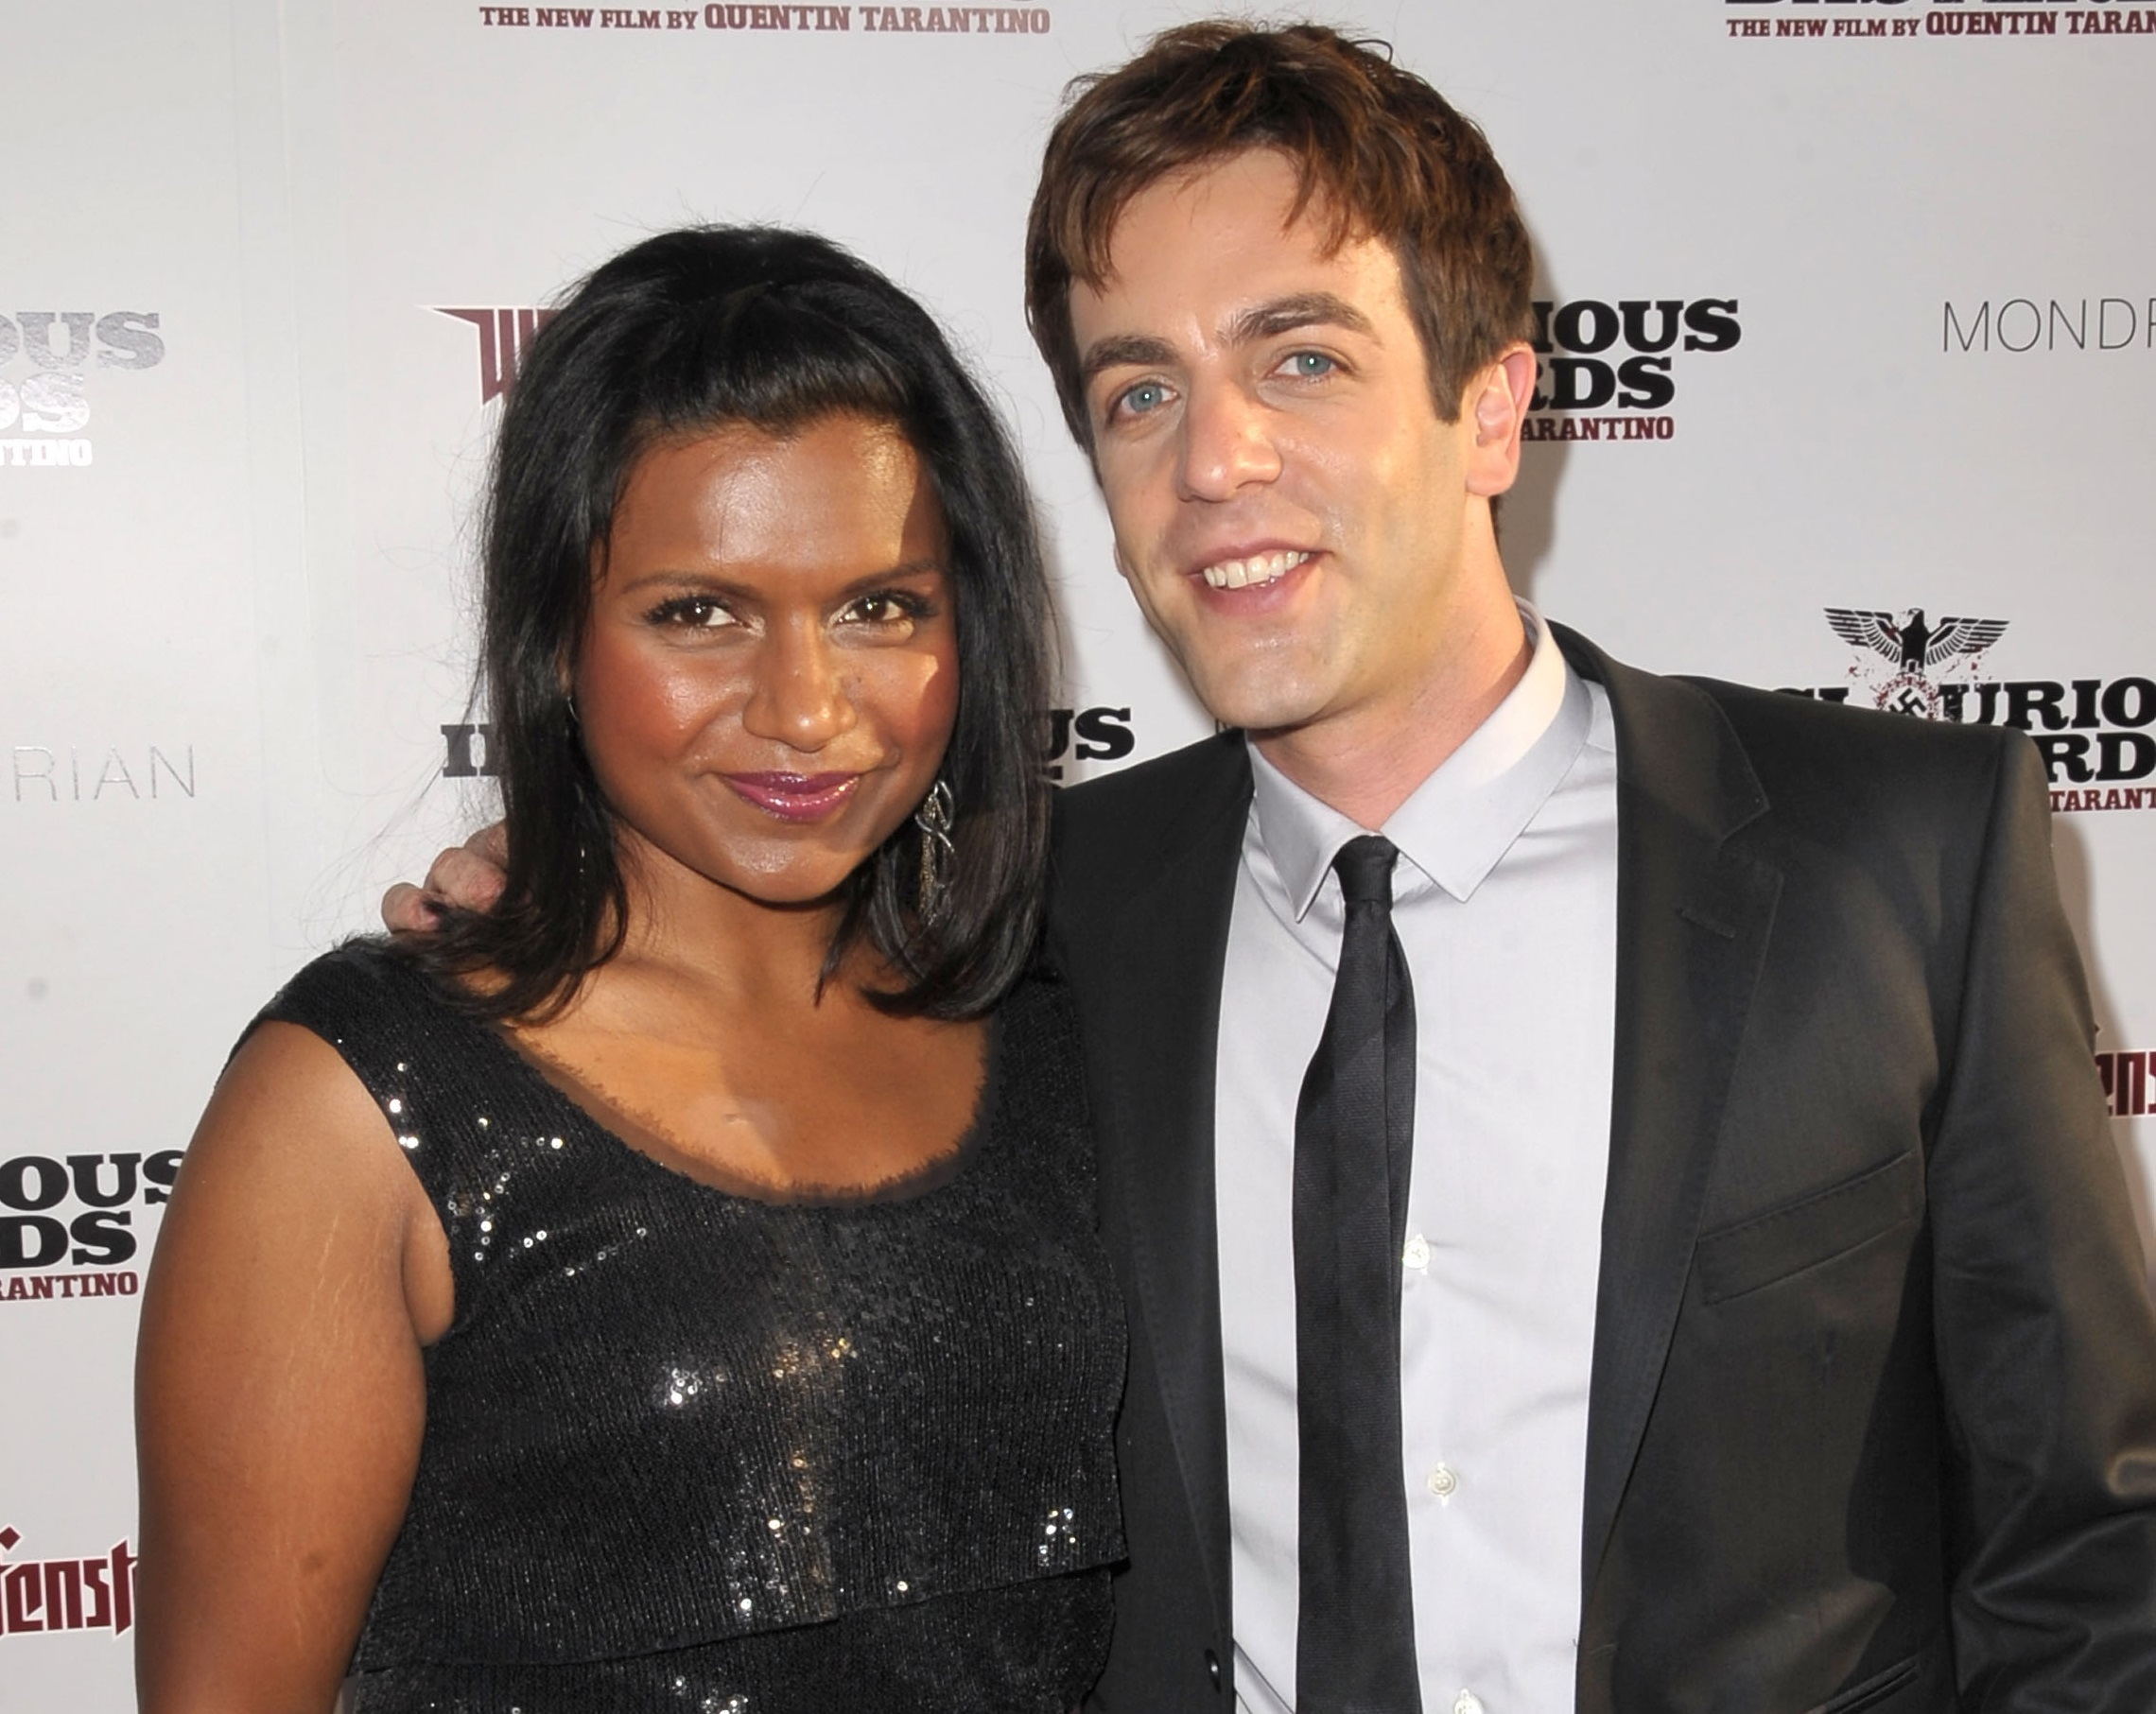 Mindy Kaling and B.J. Novak arrive at the 'Inglourious Basterds' premiere on August 10, 2009